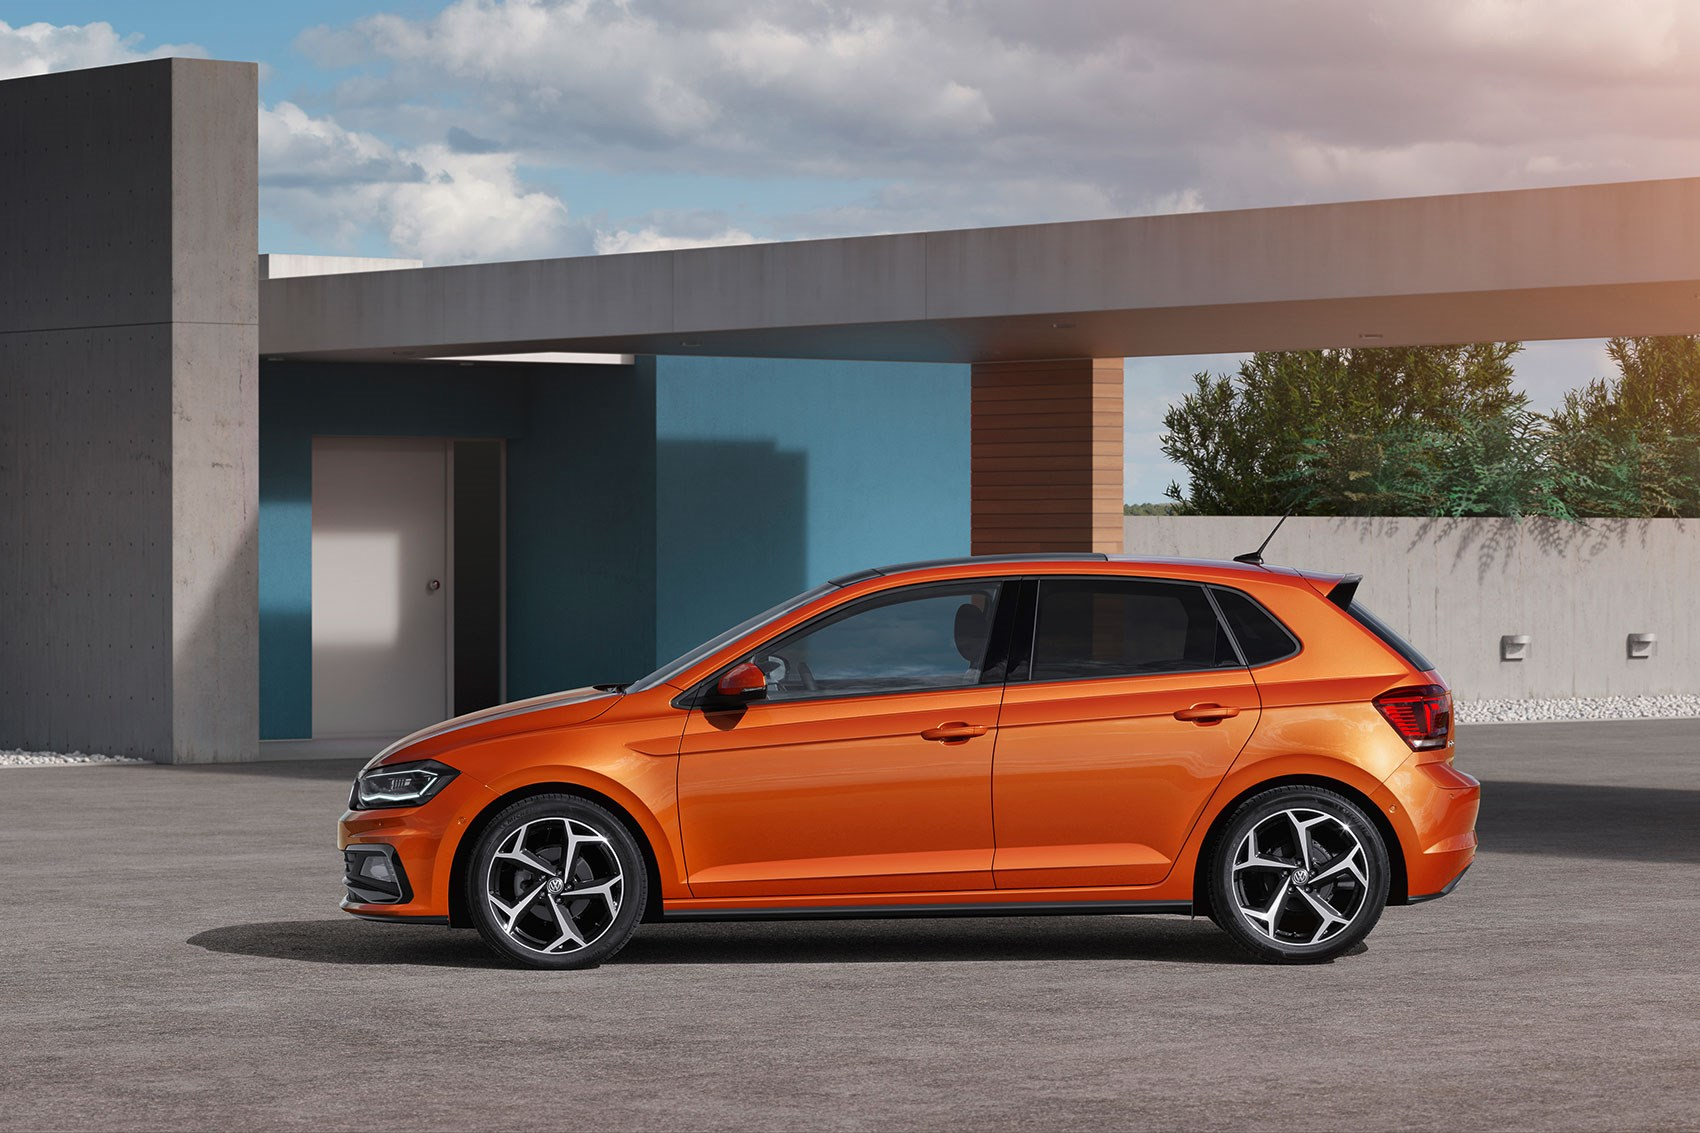 Vw polo 2018 in pictures car magazine new 2018 vw polo side profile fandeluxe Images